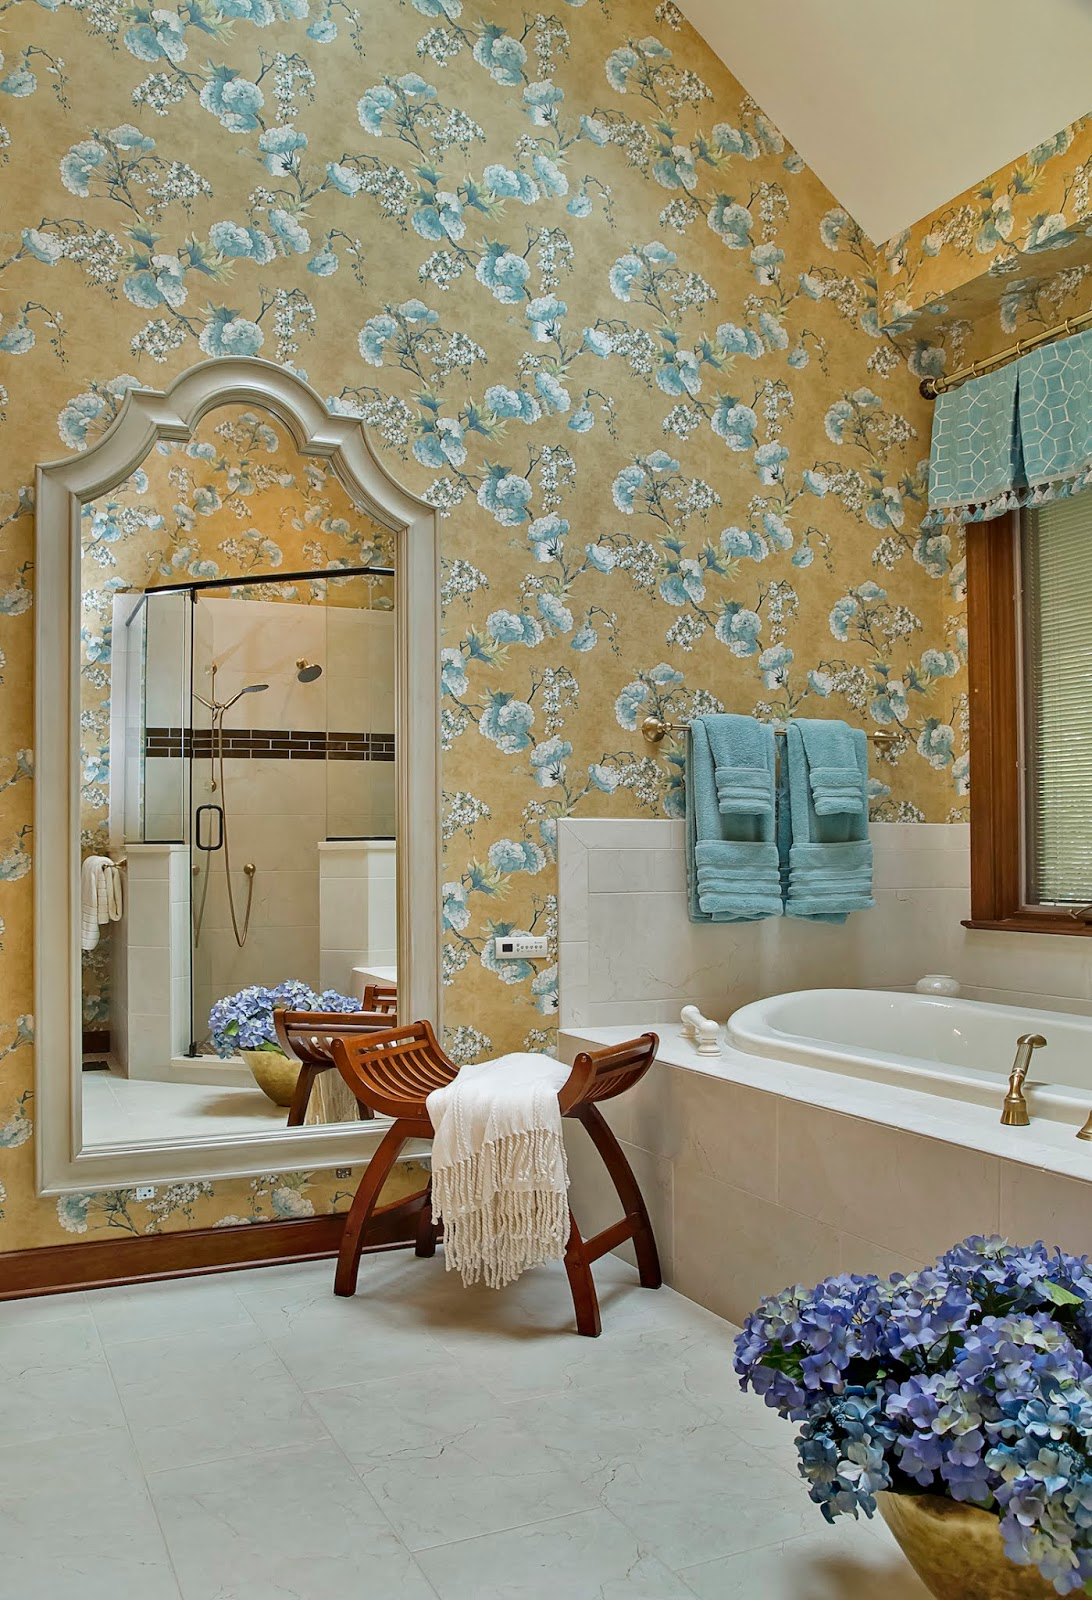 It's hard to exactly say what is the cost of a single roll of wallpaper. It could b reasonable as $15.00 a single roll or $400.00 a single roll.